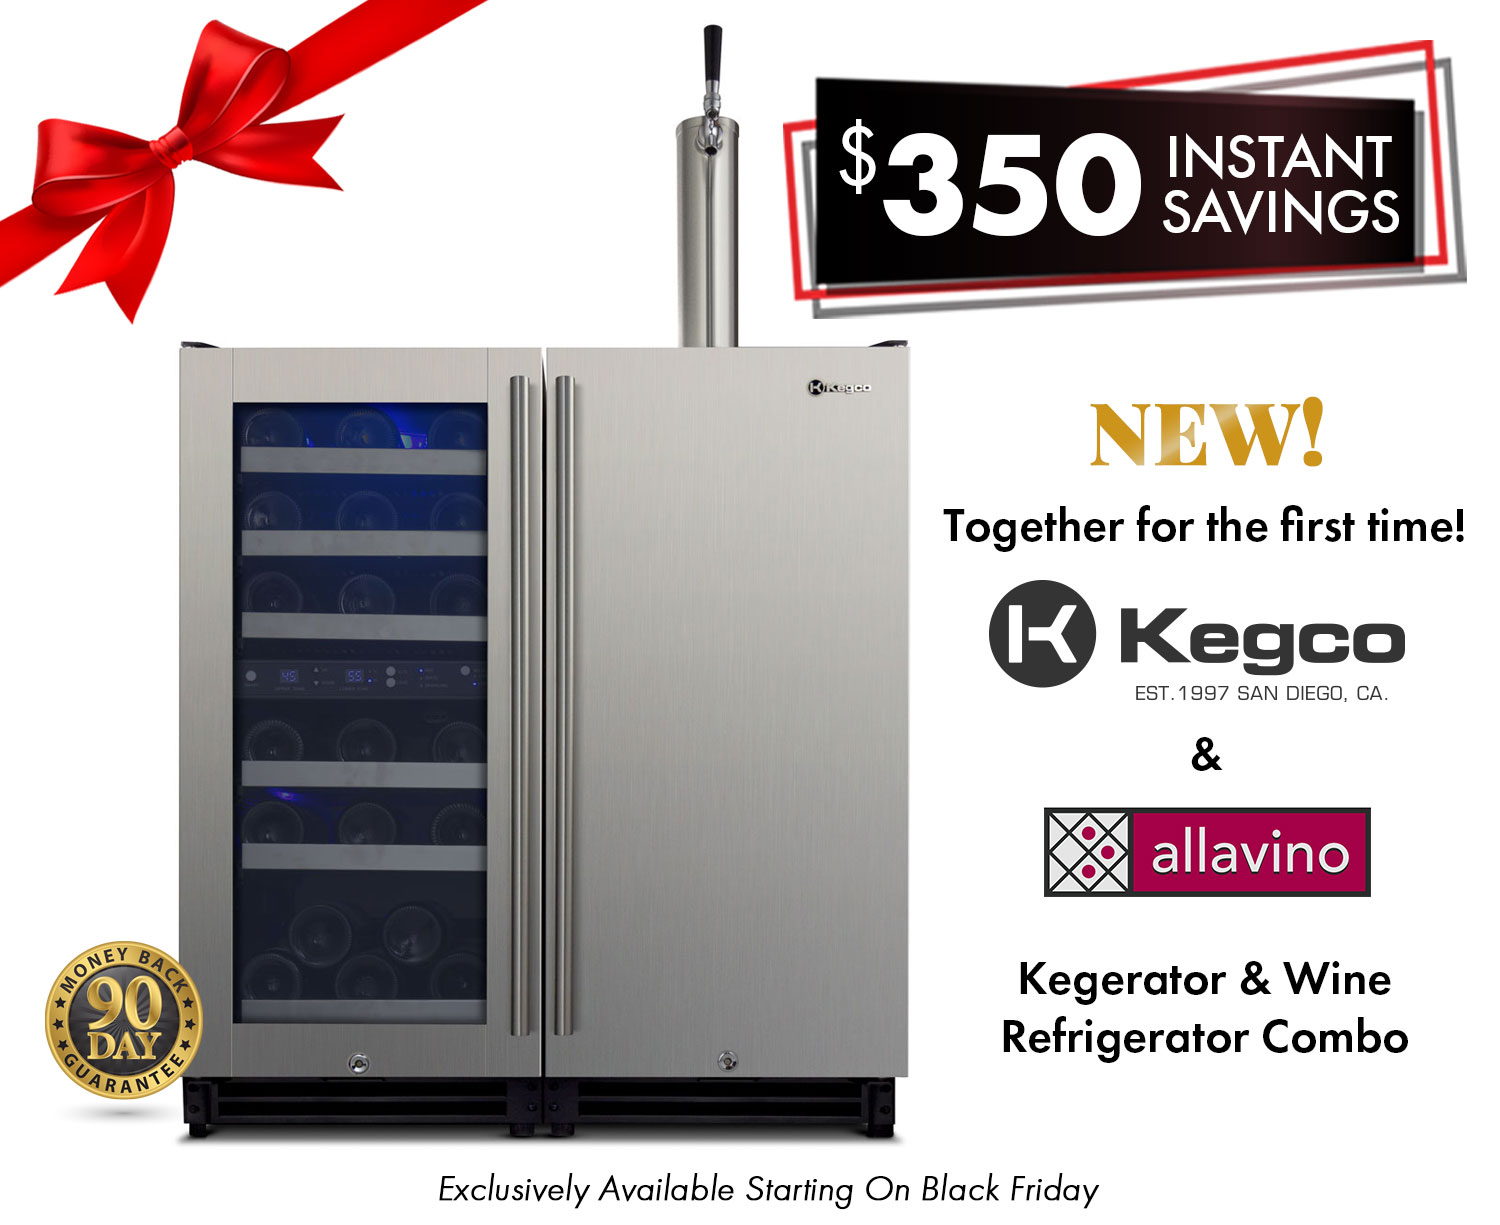 Kegerator and Wine Refrigerator